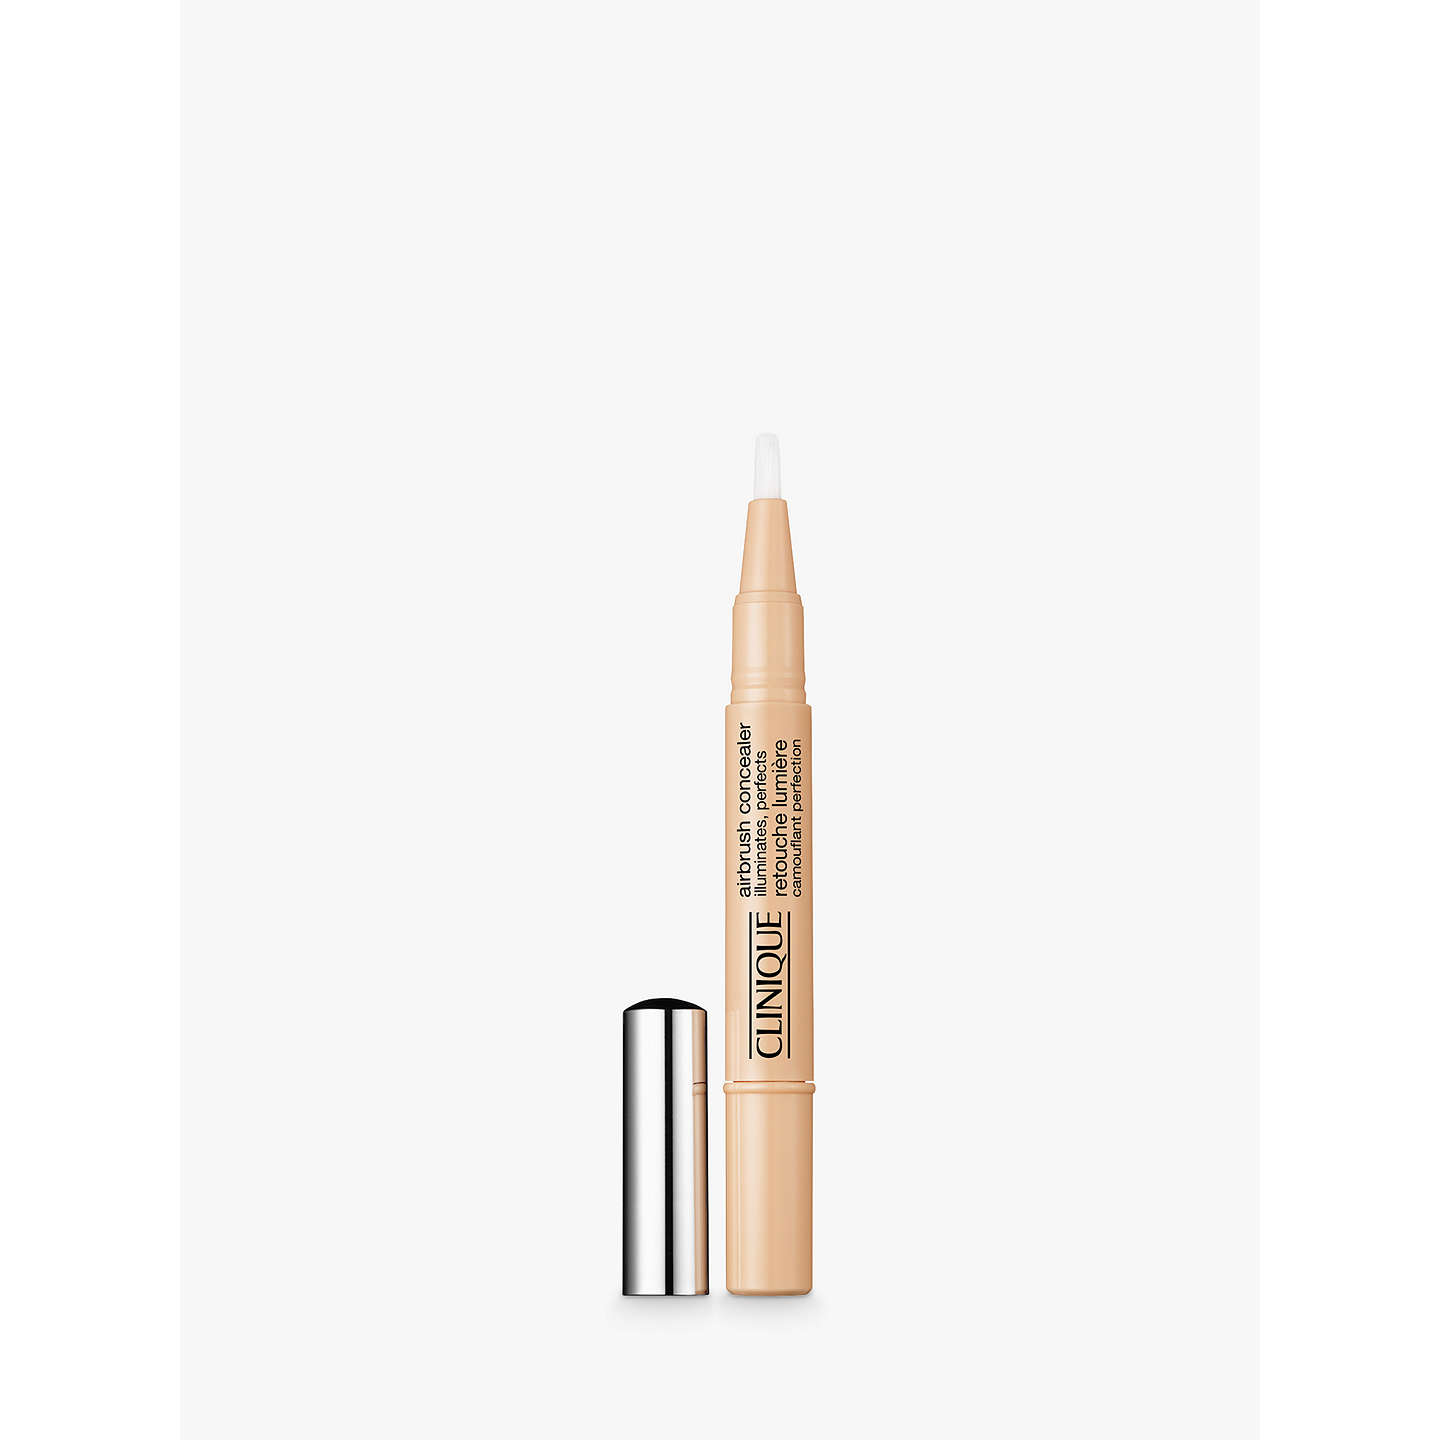 BuyClinique Airbrush Concealer - All Skin Types, 1.5ml, Deeper Caramel Online at johnlewis.com